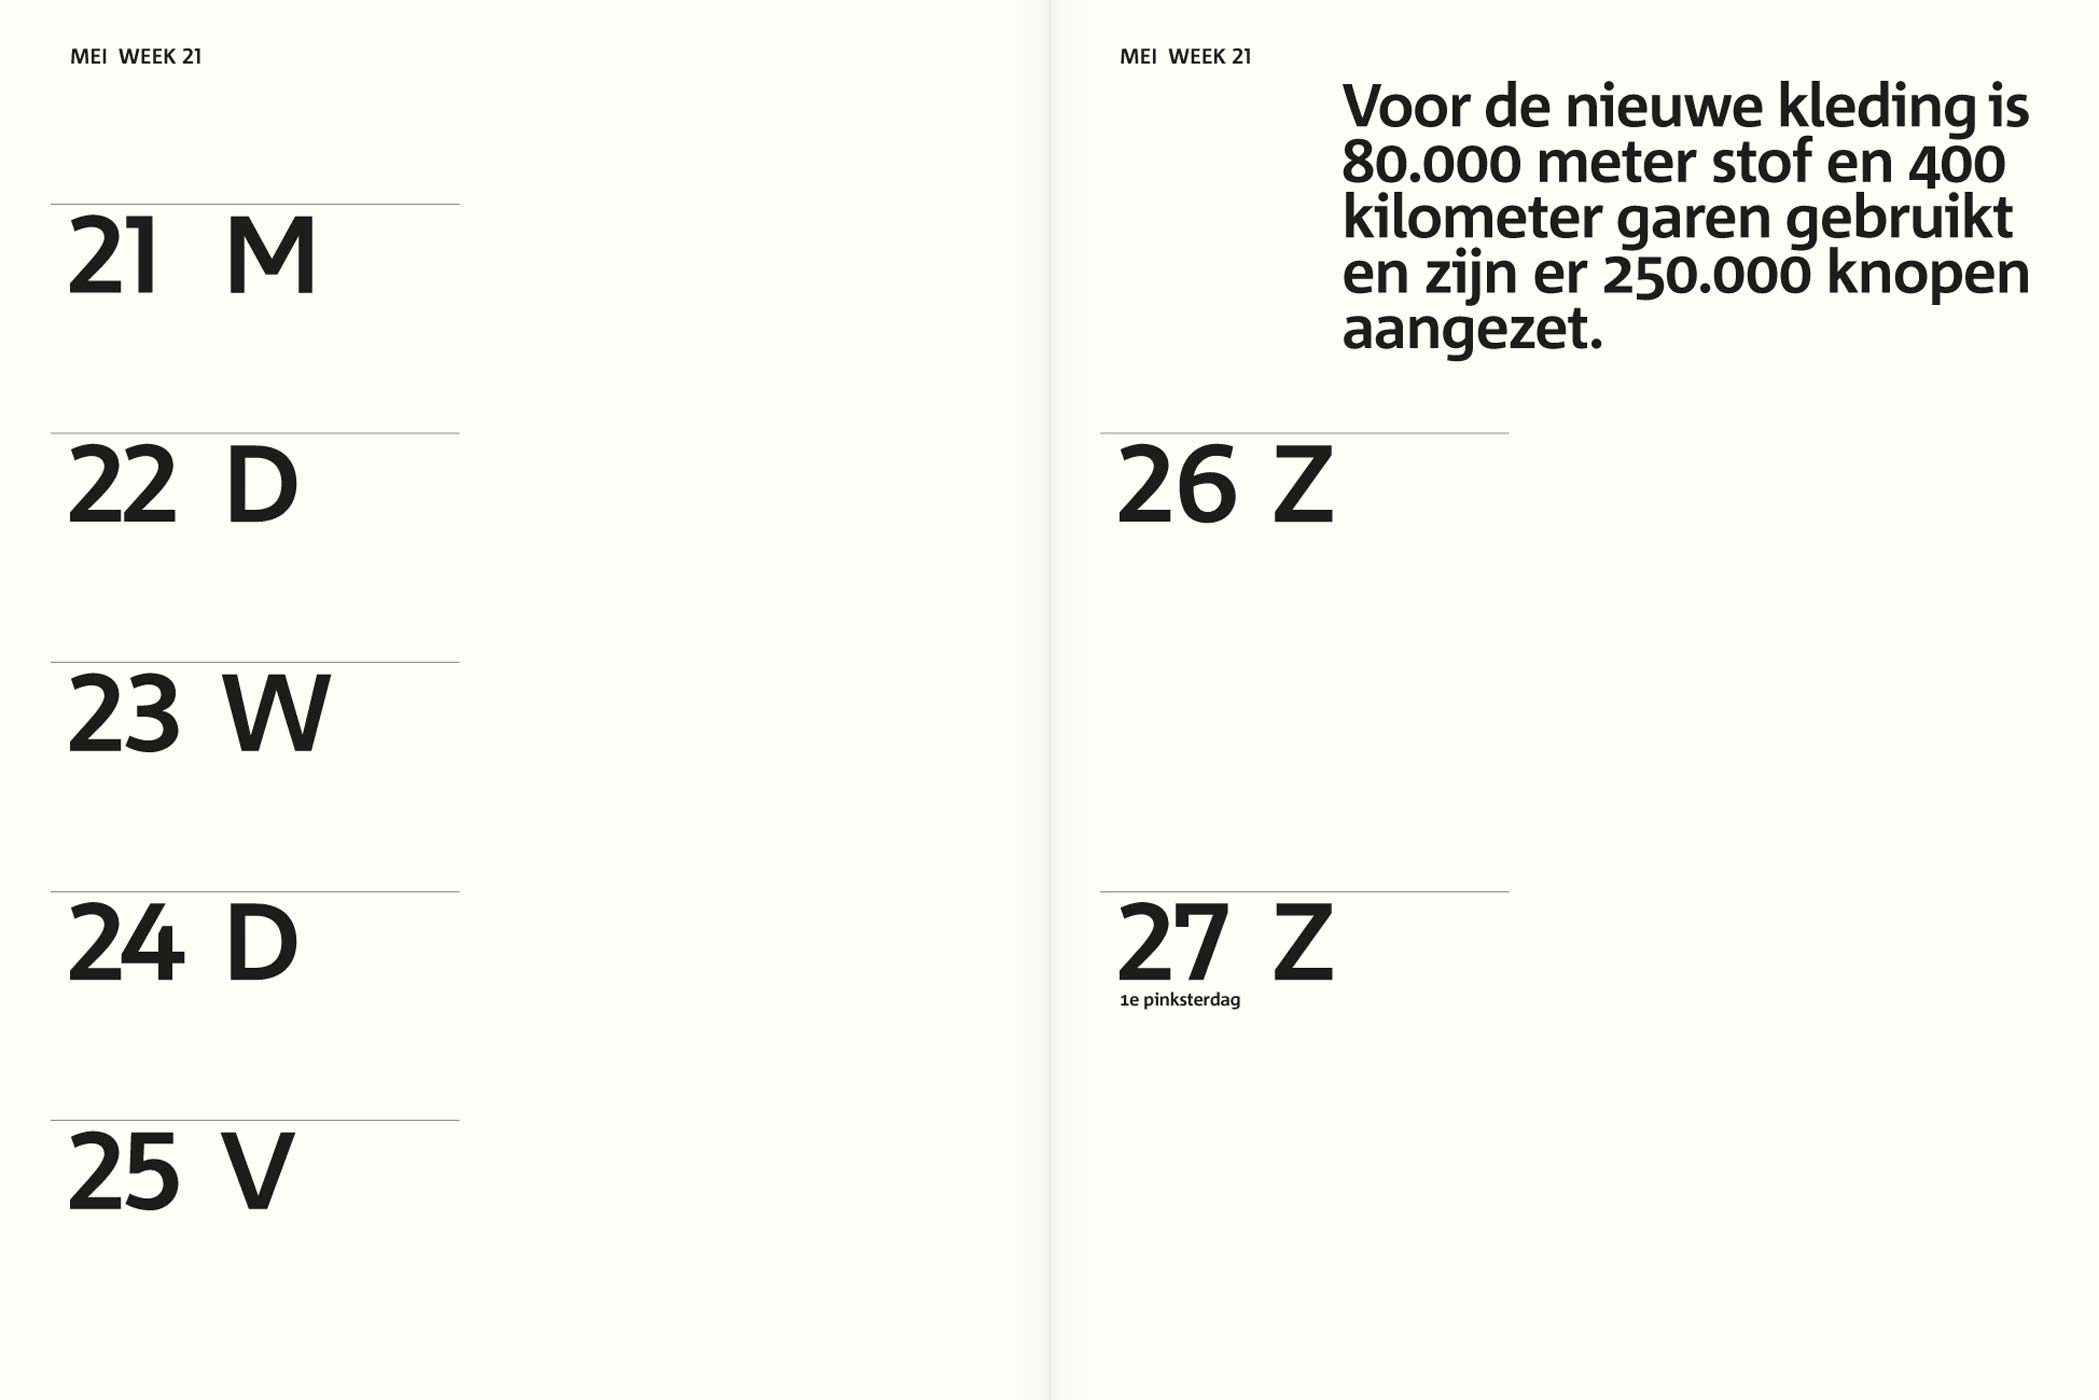 KPN, branding, publication